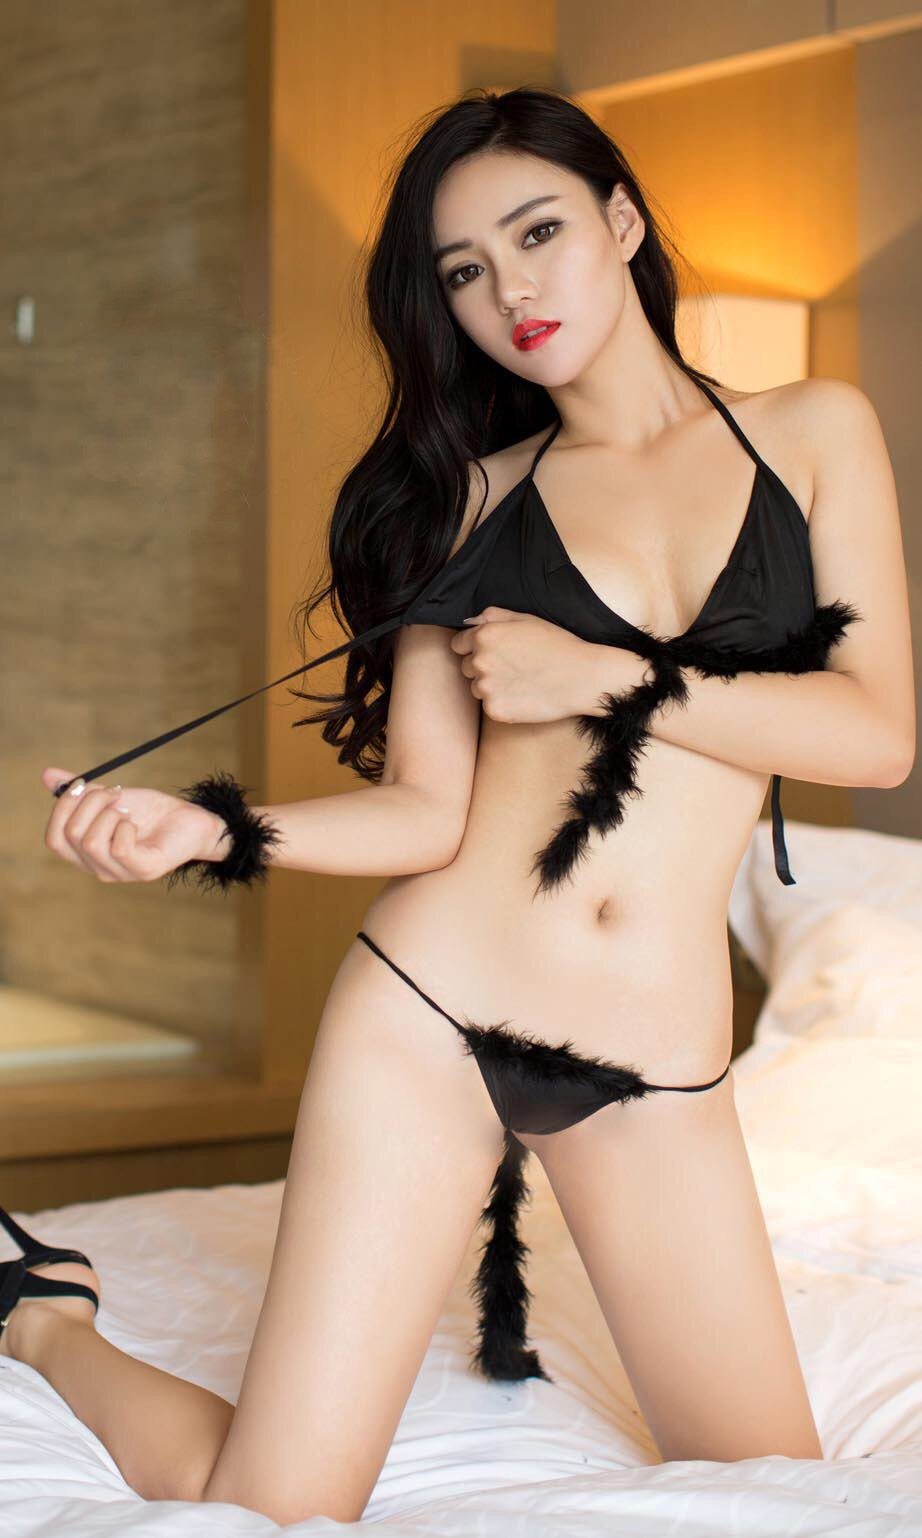 China sexy woman naked - XXX pics